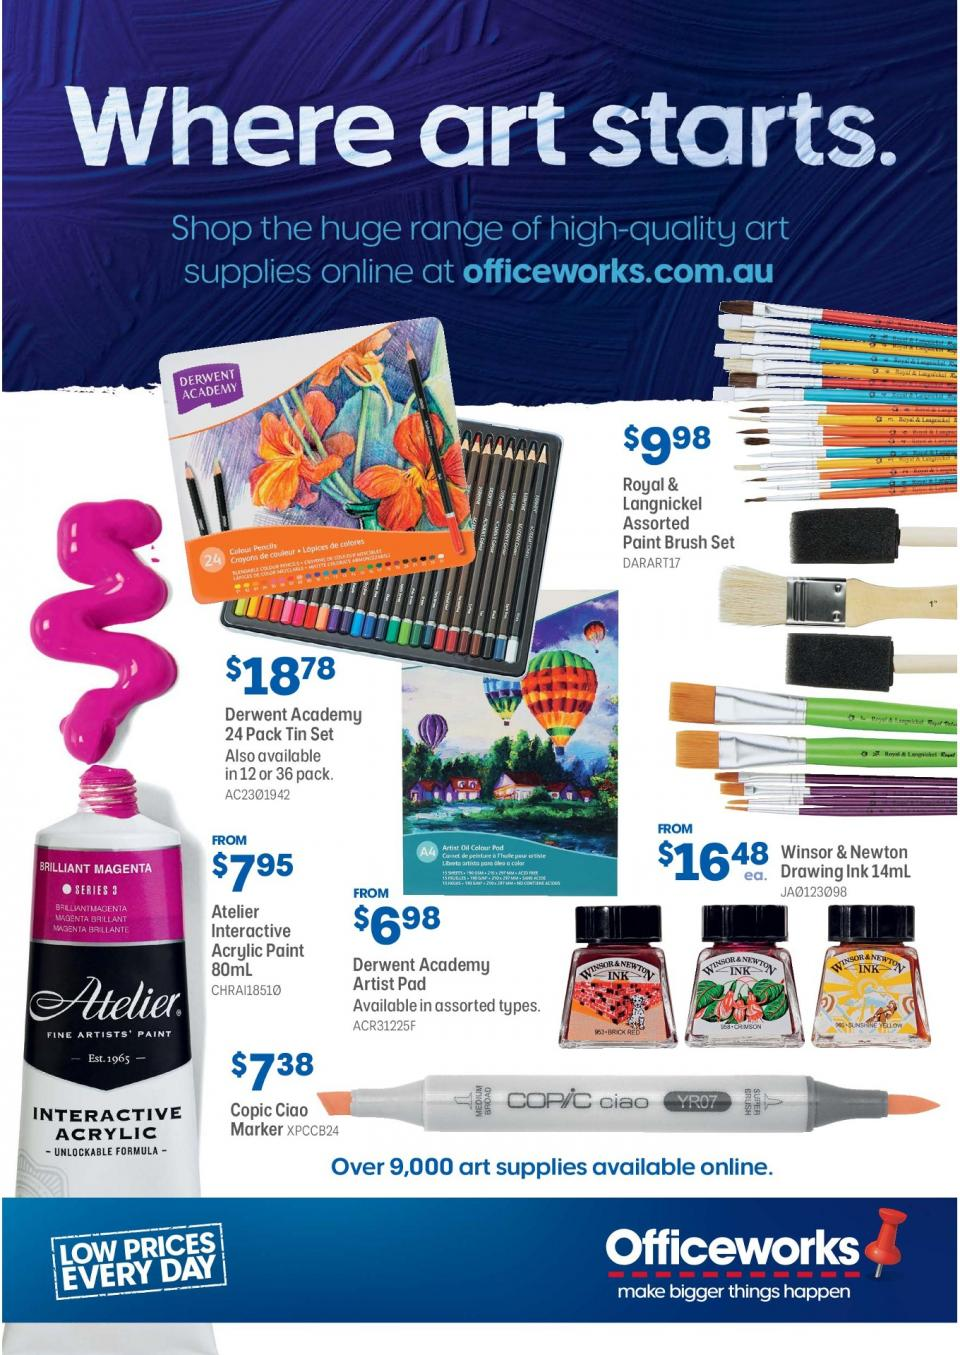 Officeworks Catalogue Paints April 2019